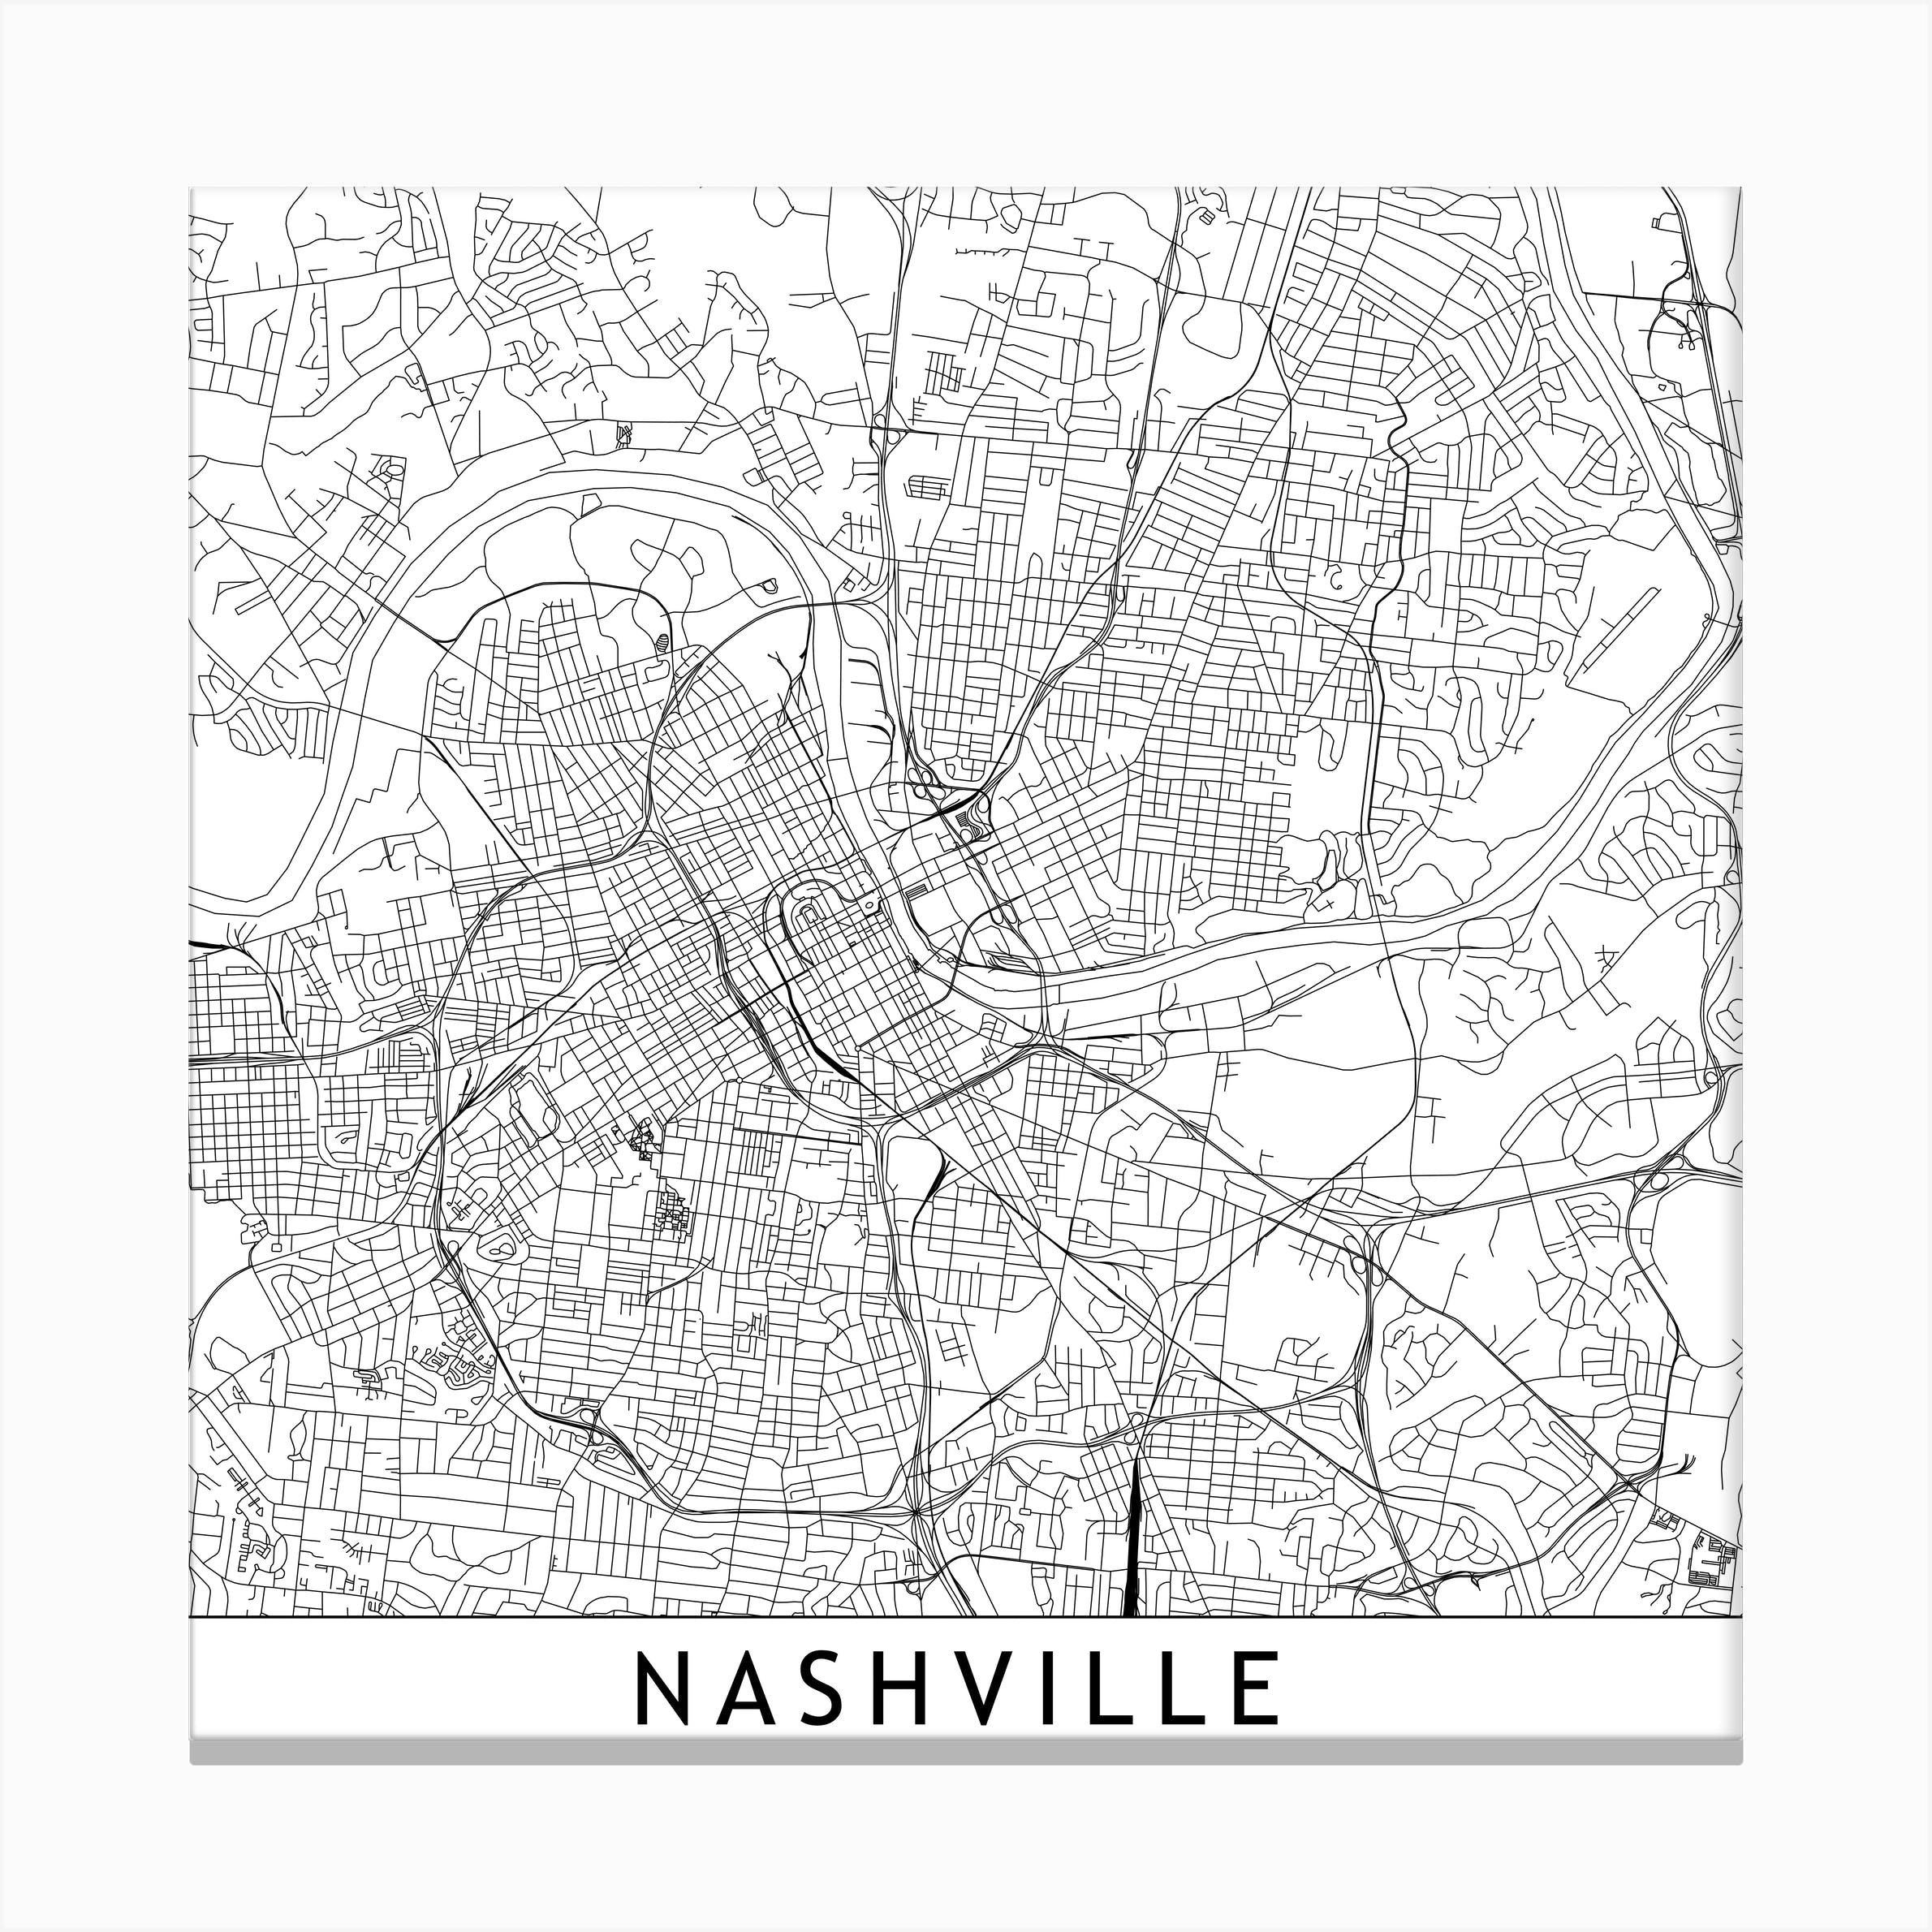 This is an image of Printable Map of Nashville intended for broadway map